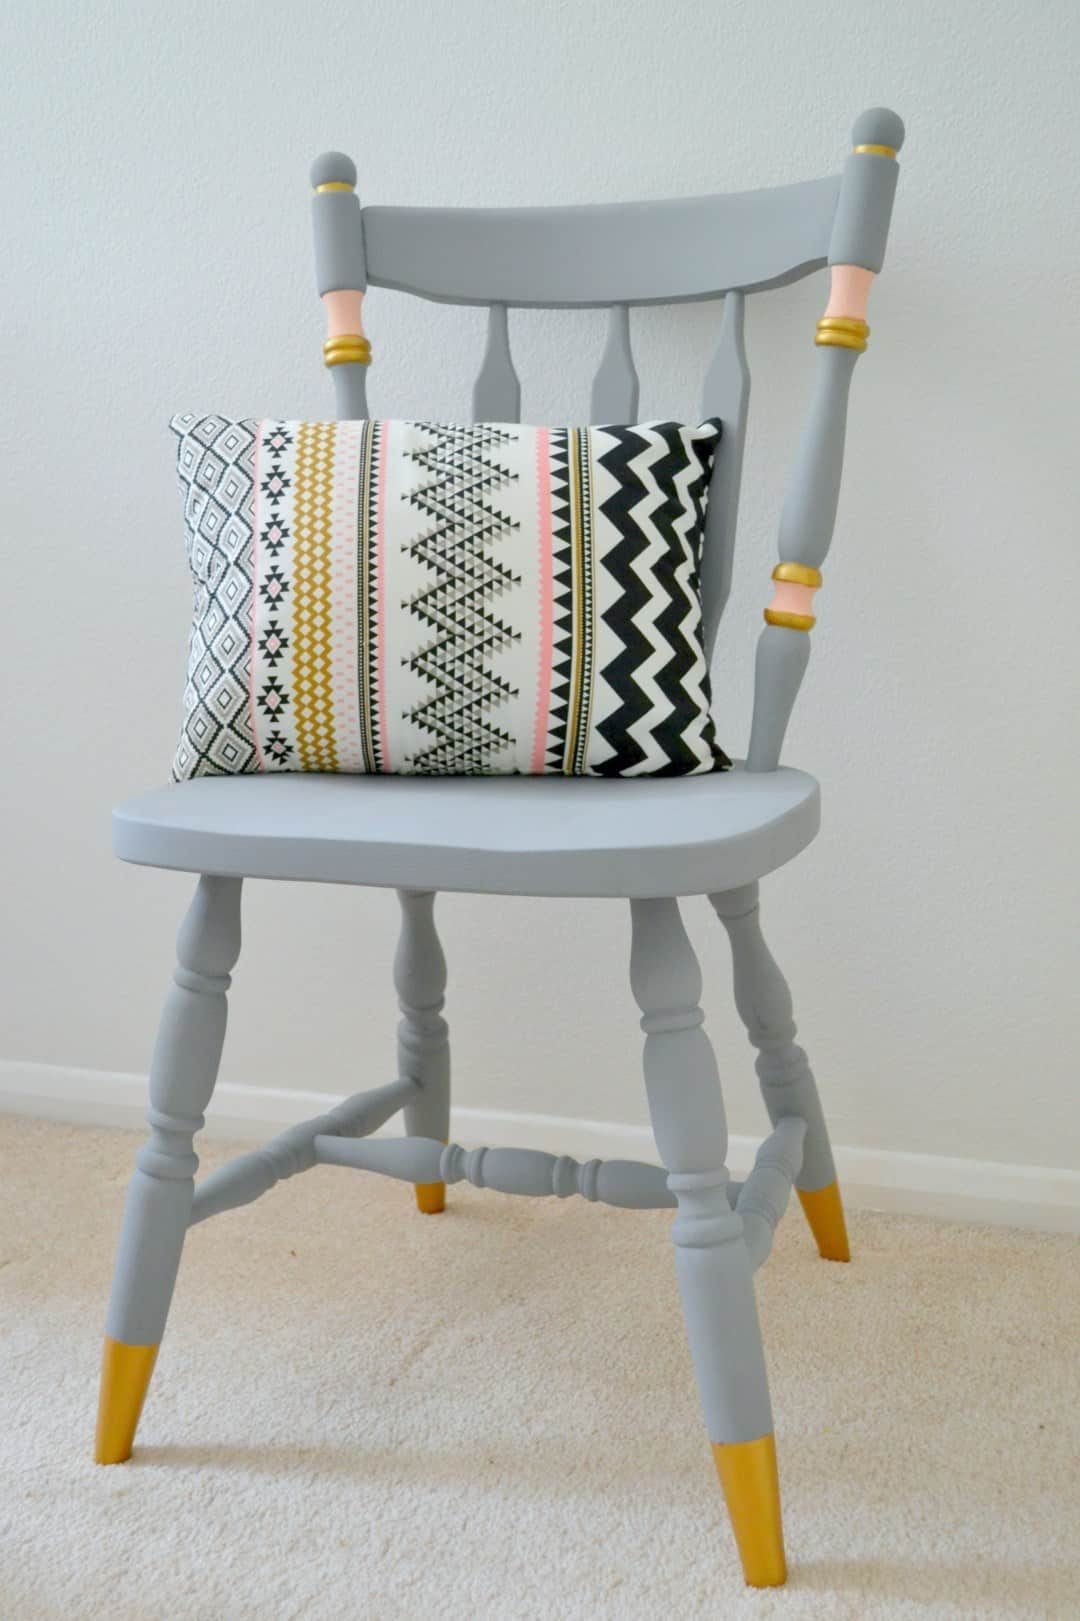 Upcycled Wooden Chair Inspiration - diy Thought  Chalk paint